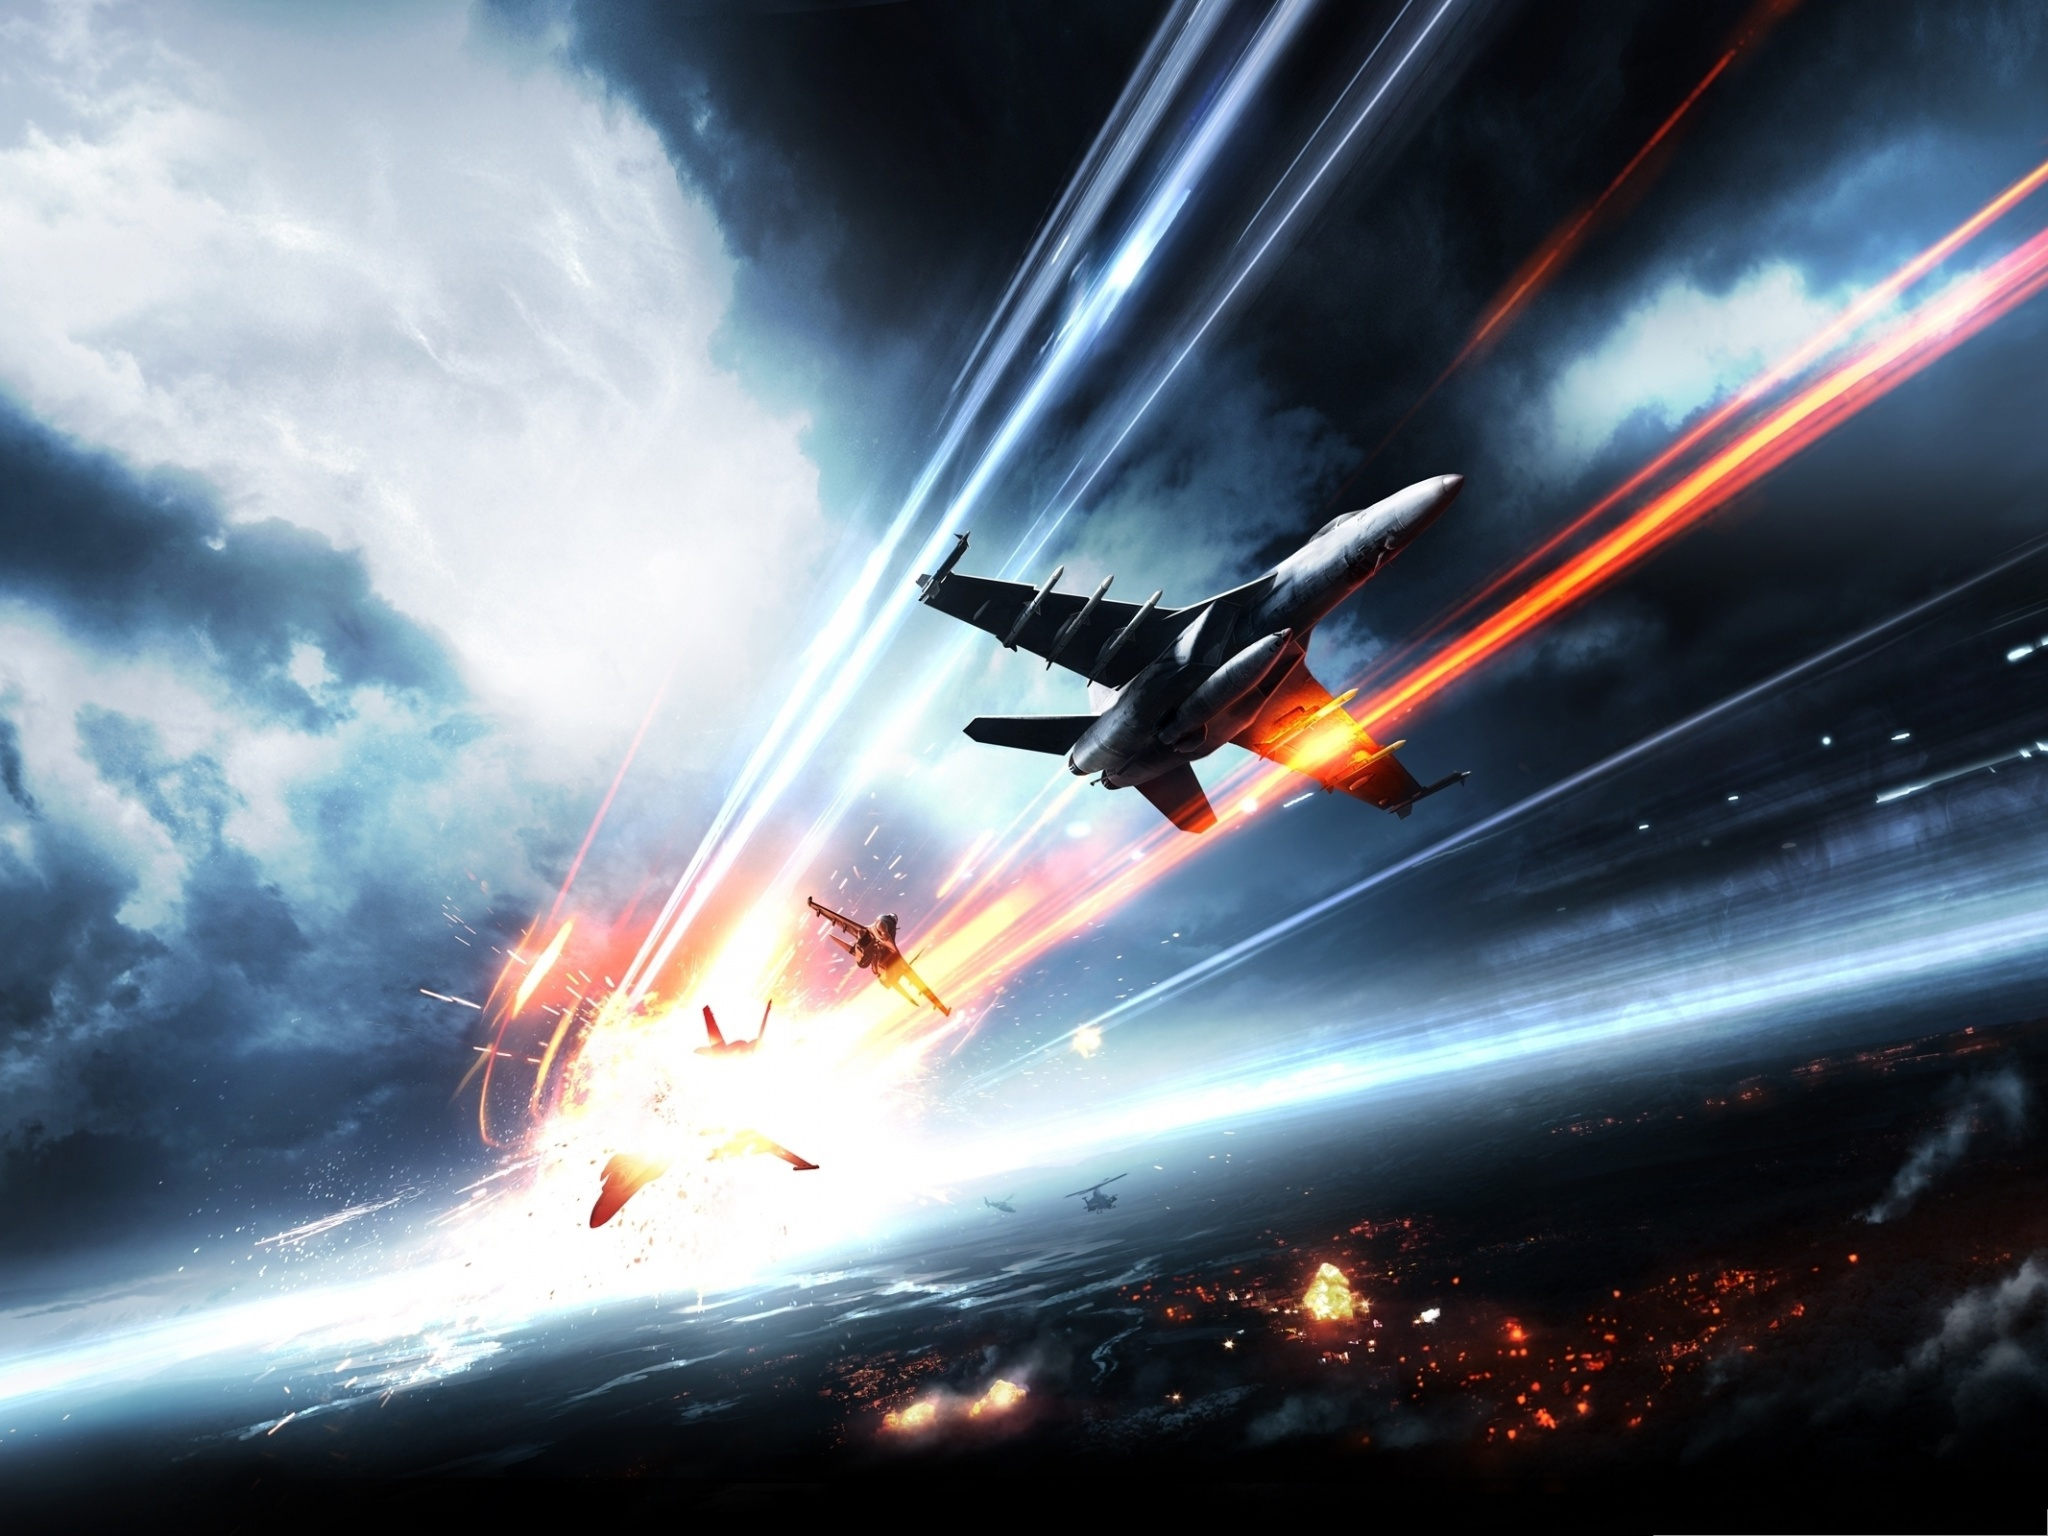 click to free download the wallpaper--Free Aircrafts Wallpaper, Super Planes in Battlefield, Nice Look 2048X1536 free wallpaper download